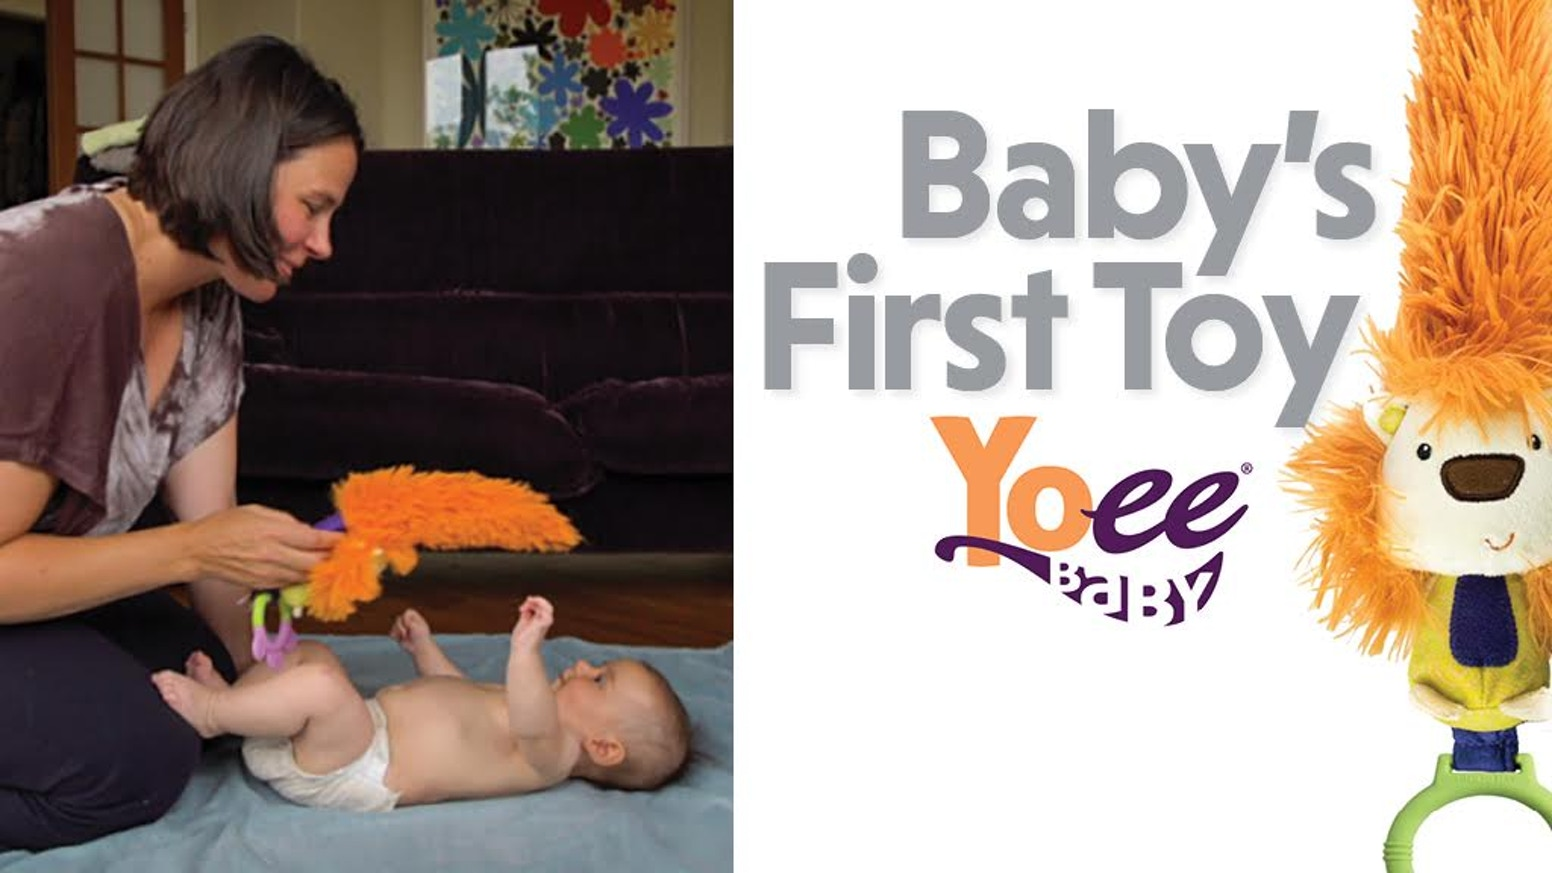 Yoee Baby is a developmental toy that takes its cues from science and helps parents play, connect and bond with their babies.